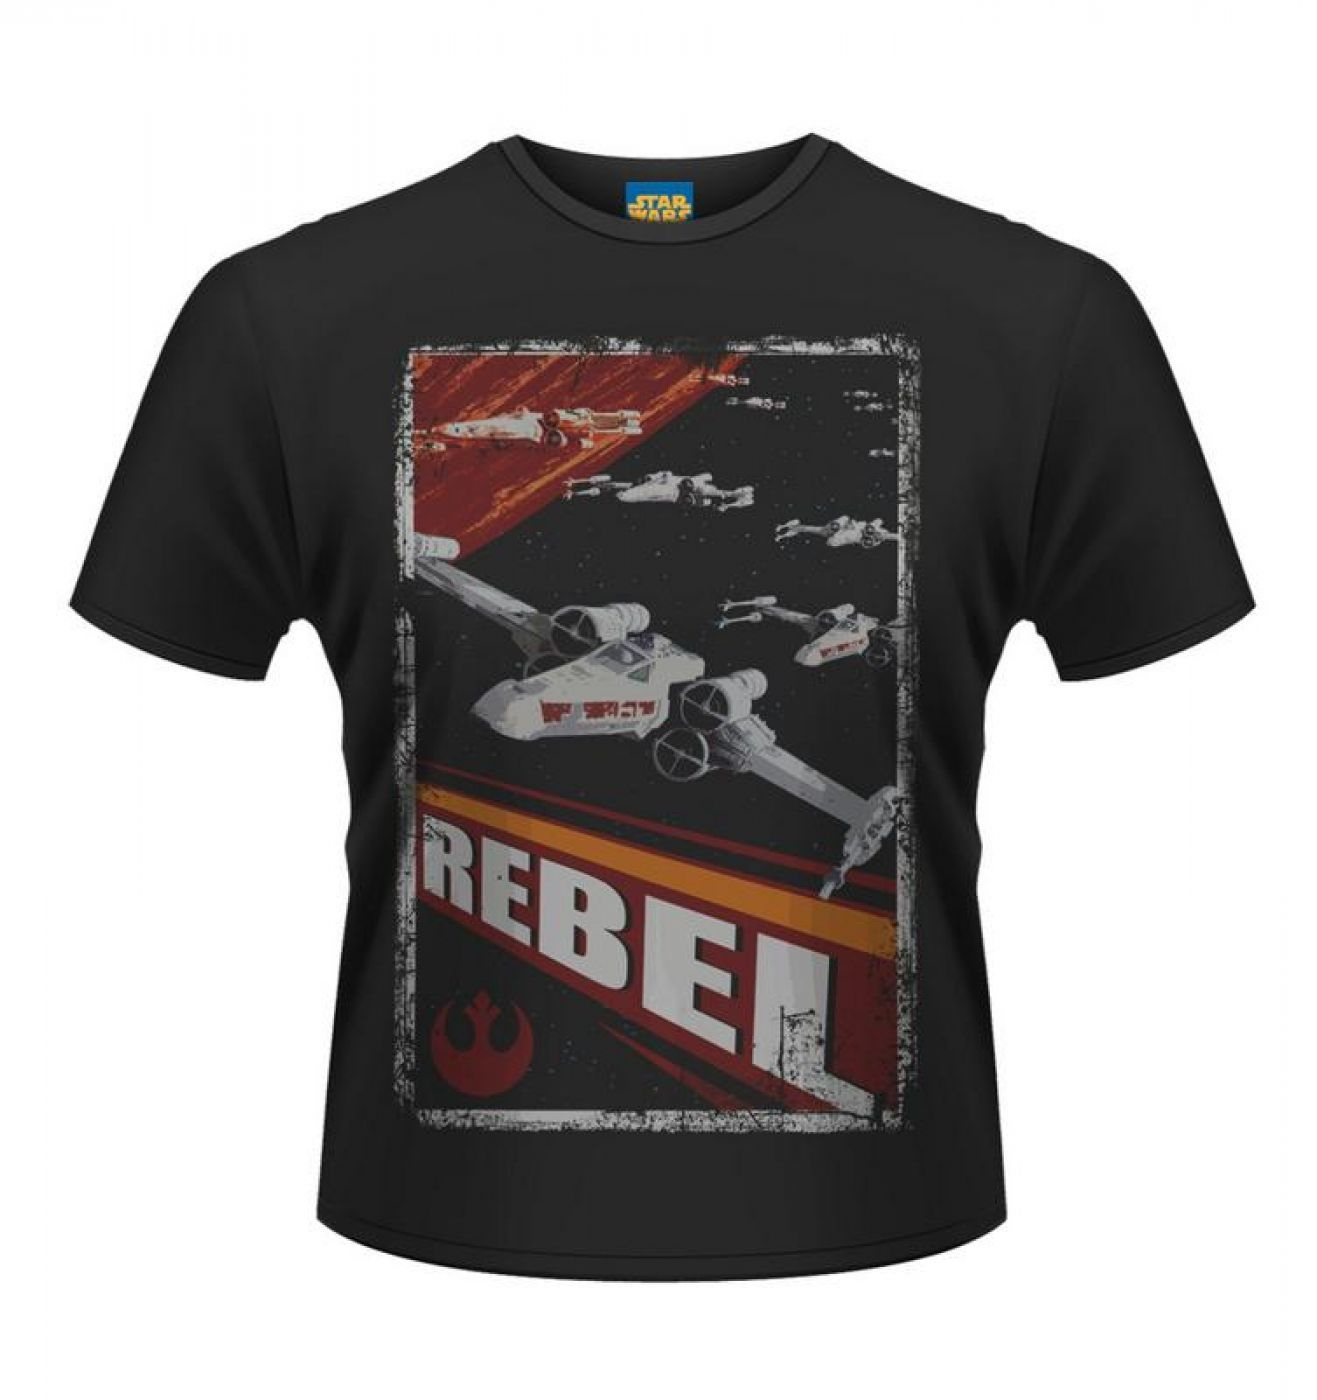 Star Wars Rebel t-shirt - OFFICIAL STAR WARS MERCHANDISE